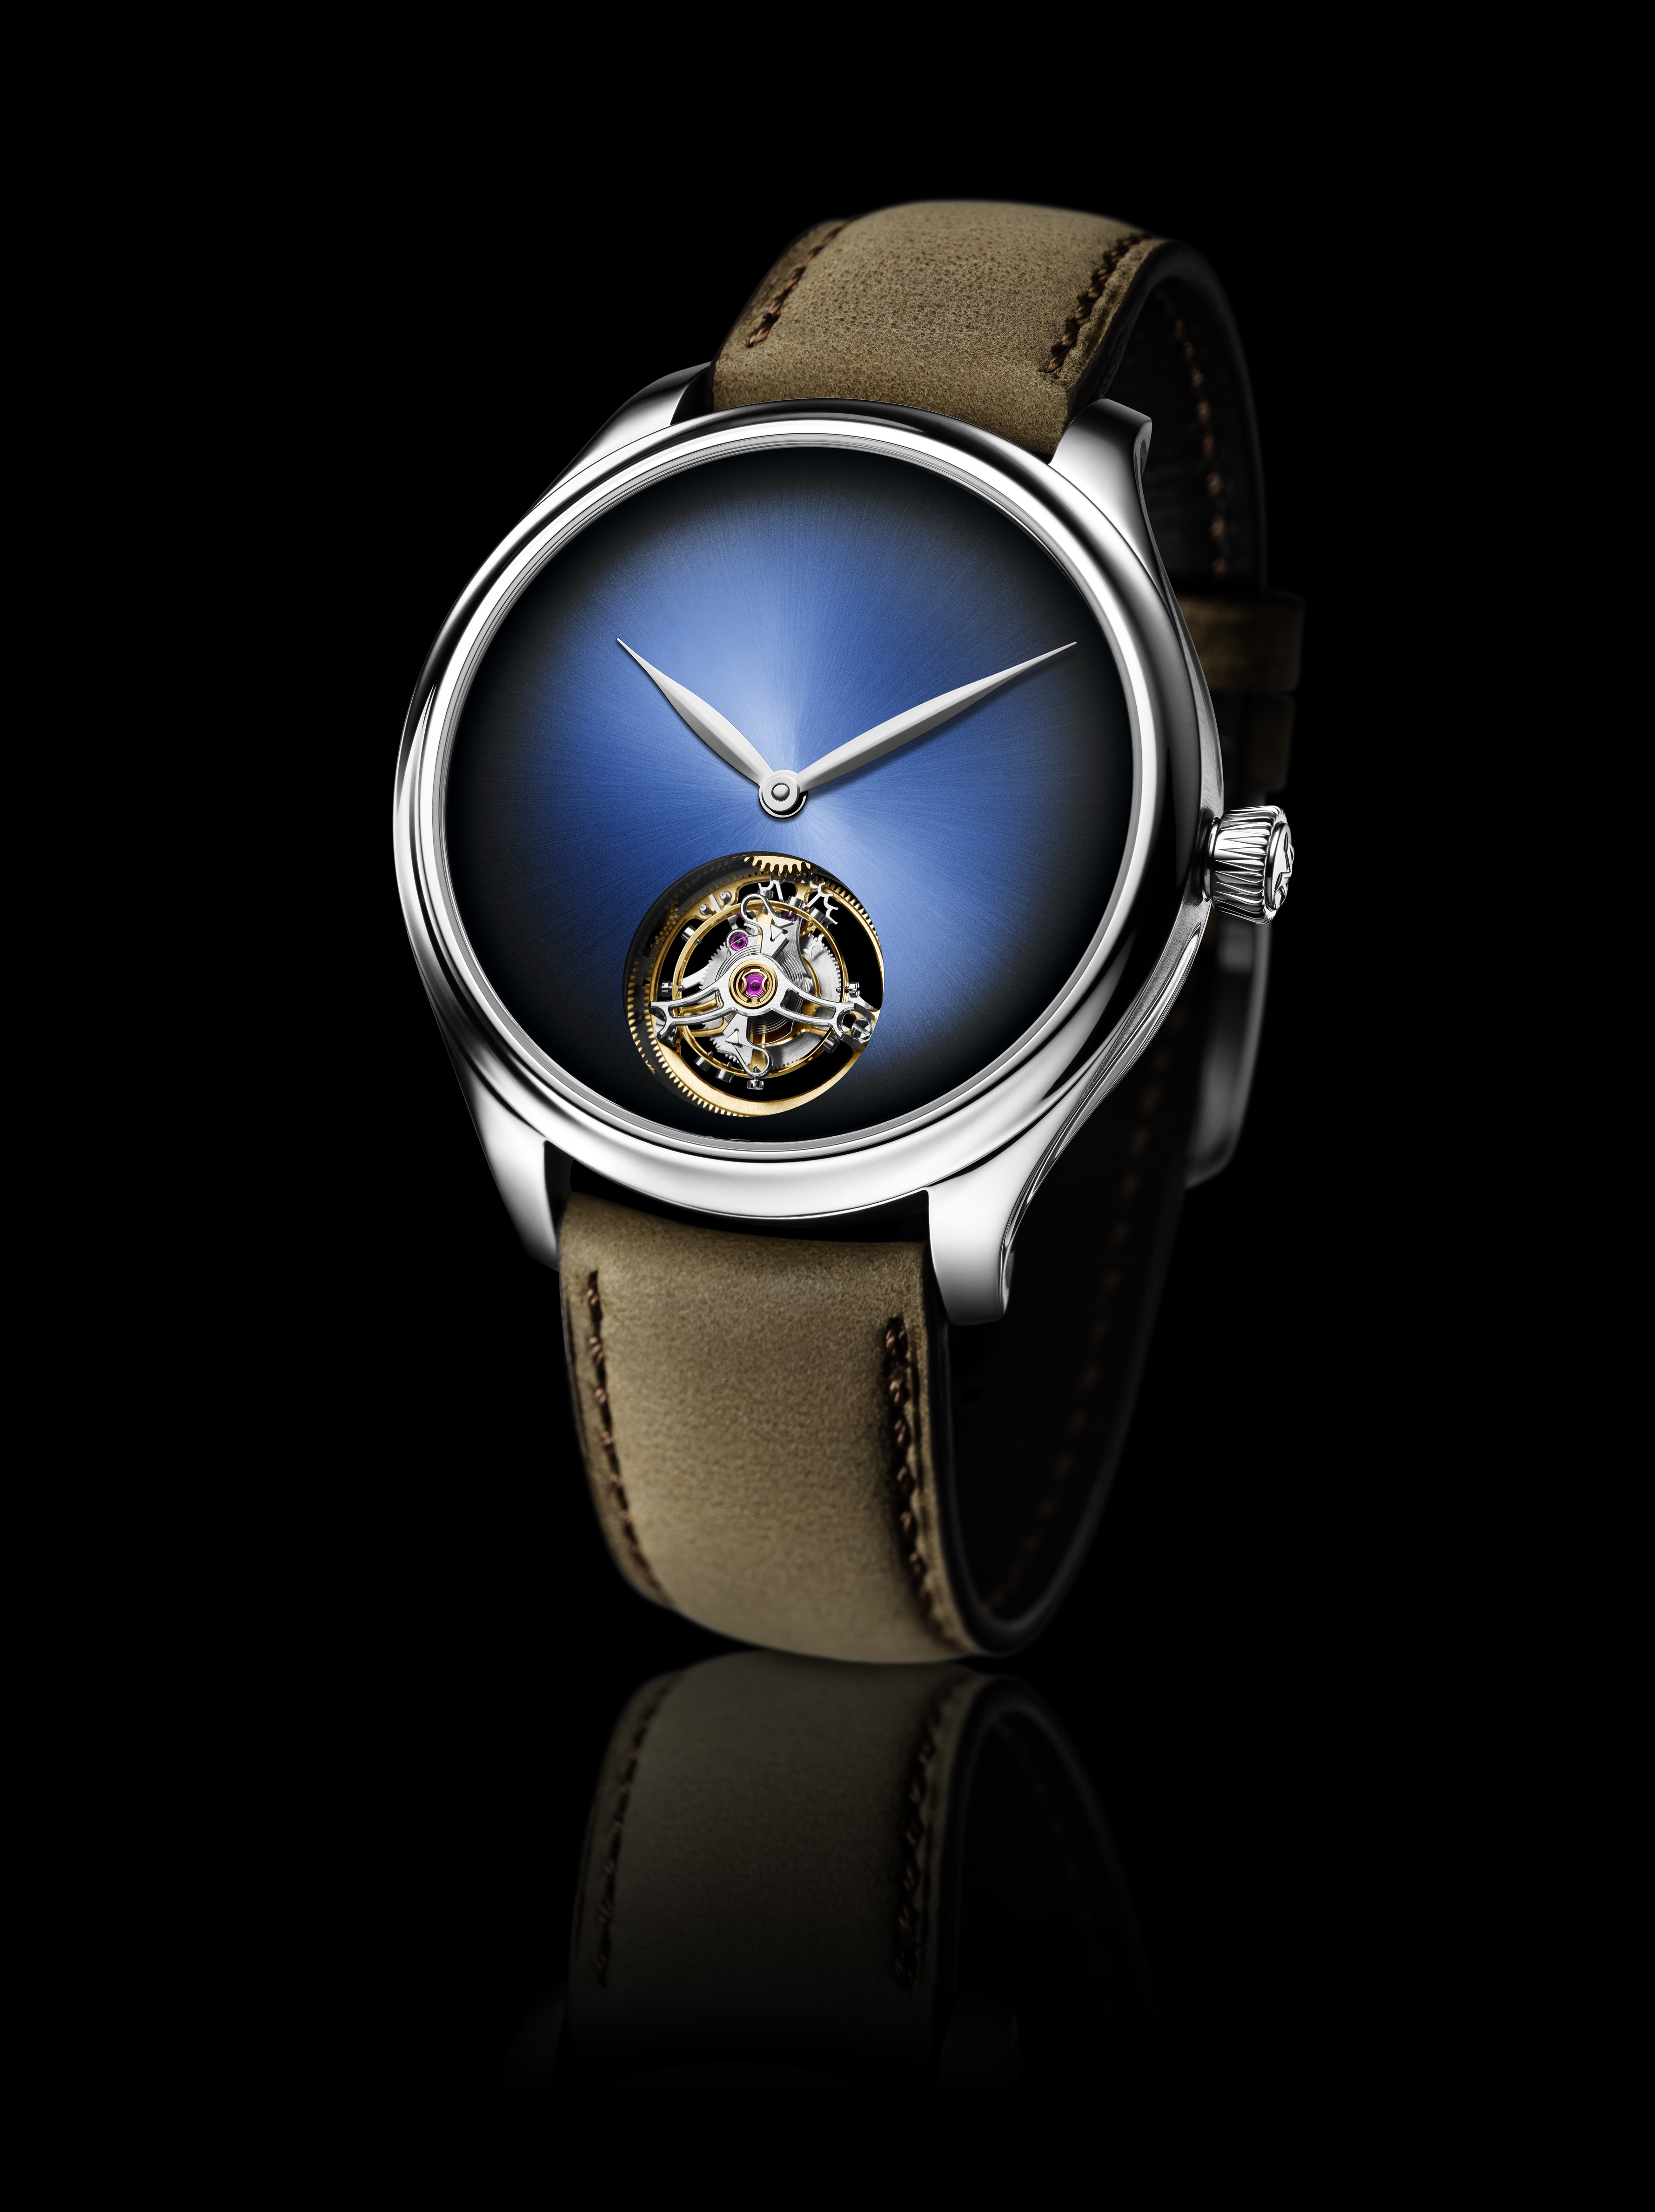 endeavour_tourbillon_concept_pr_black_background